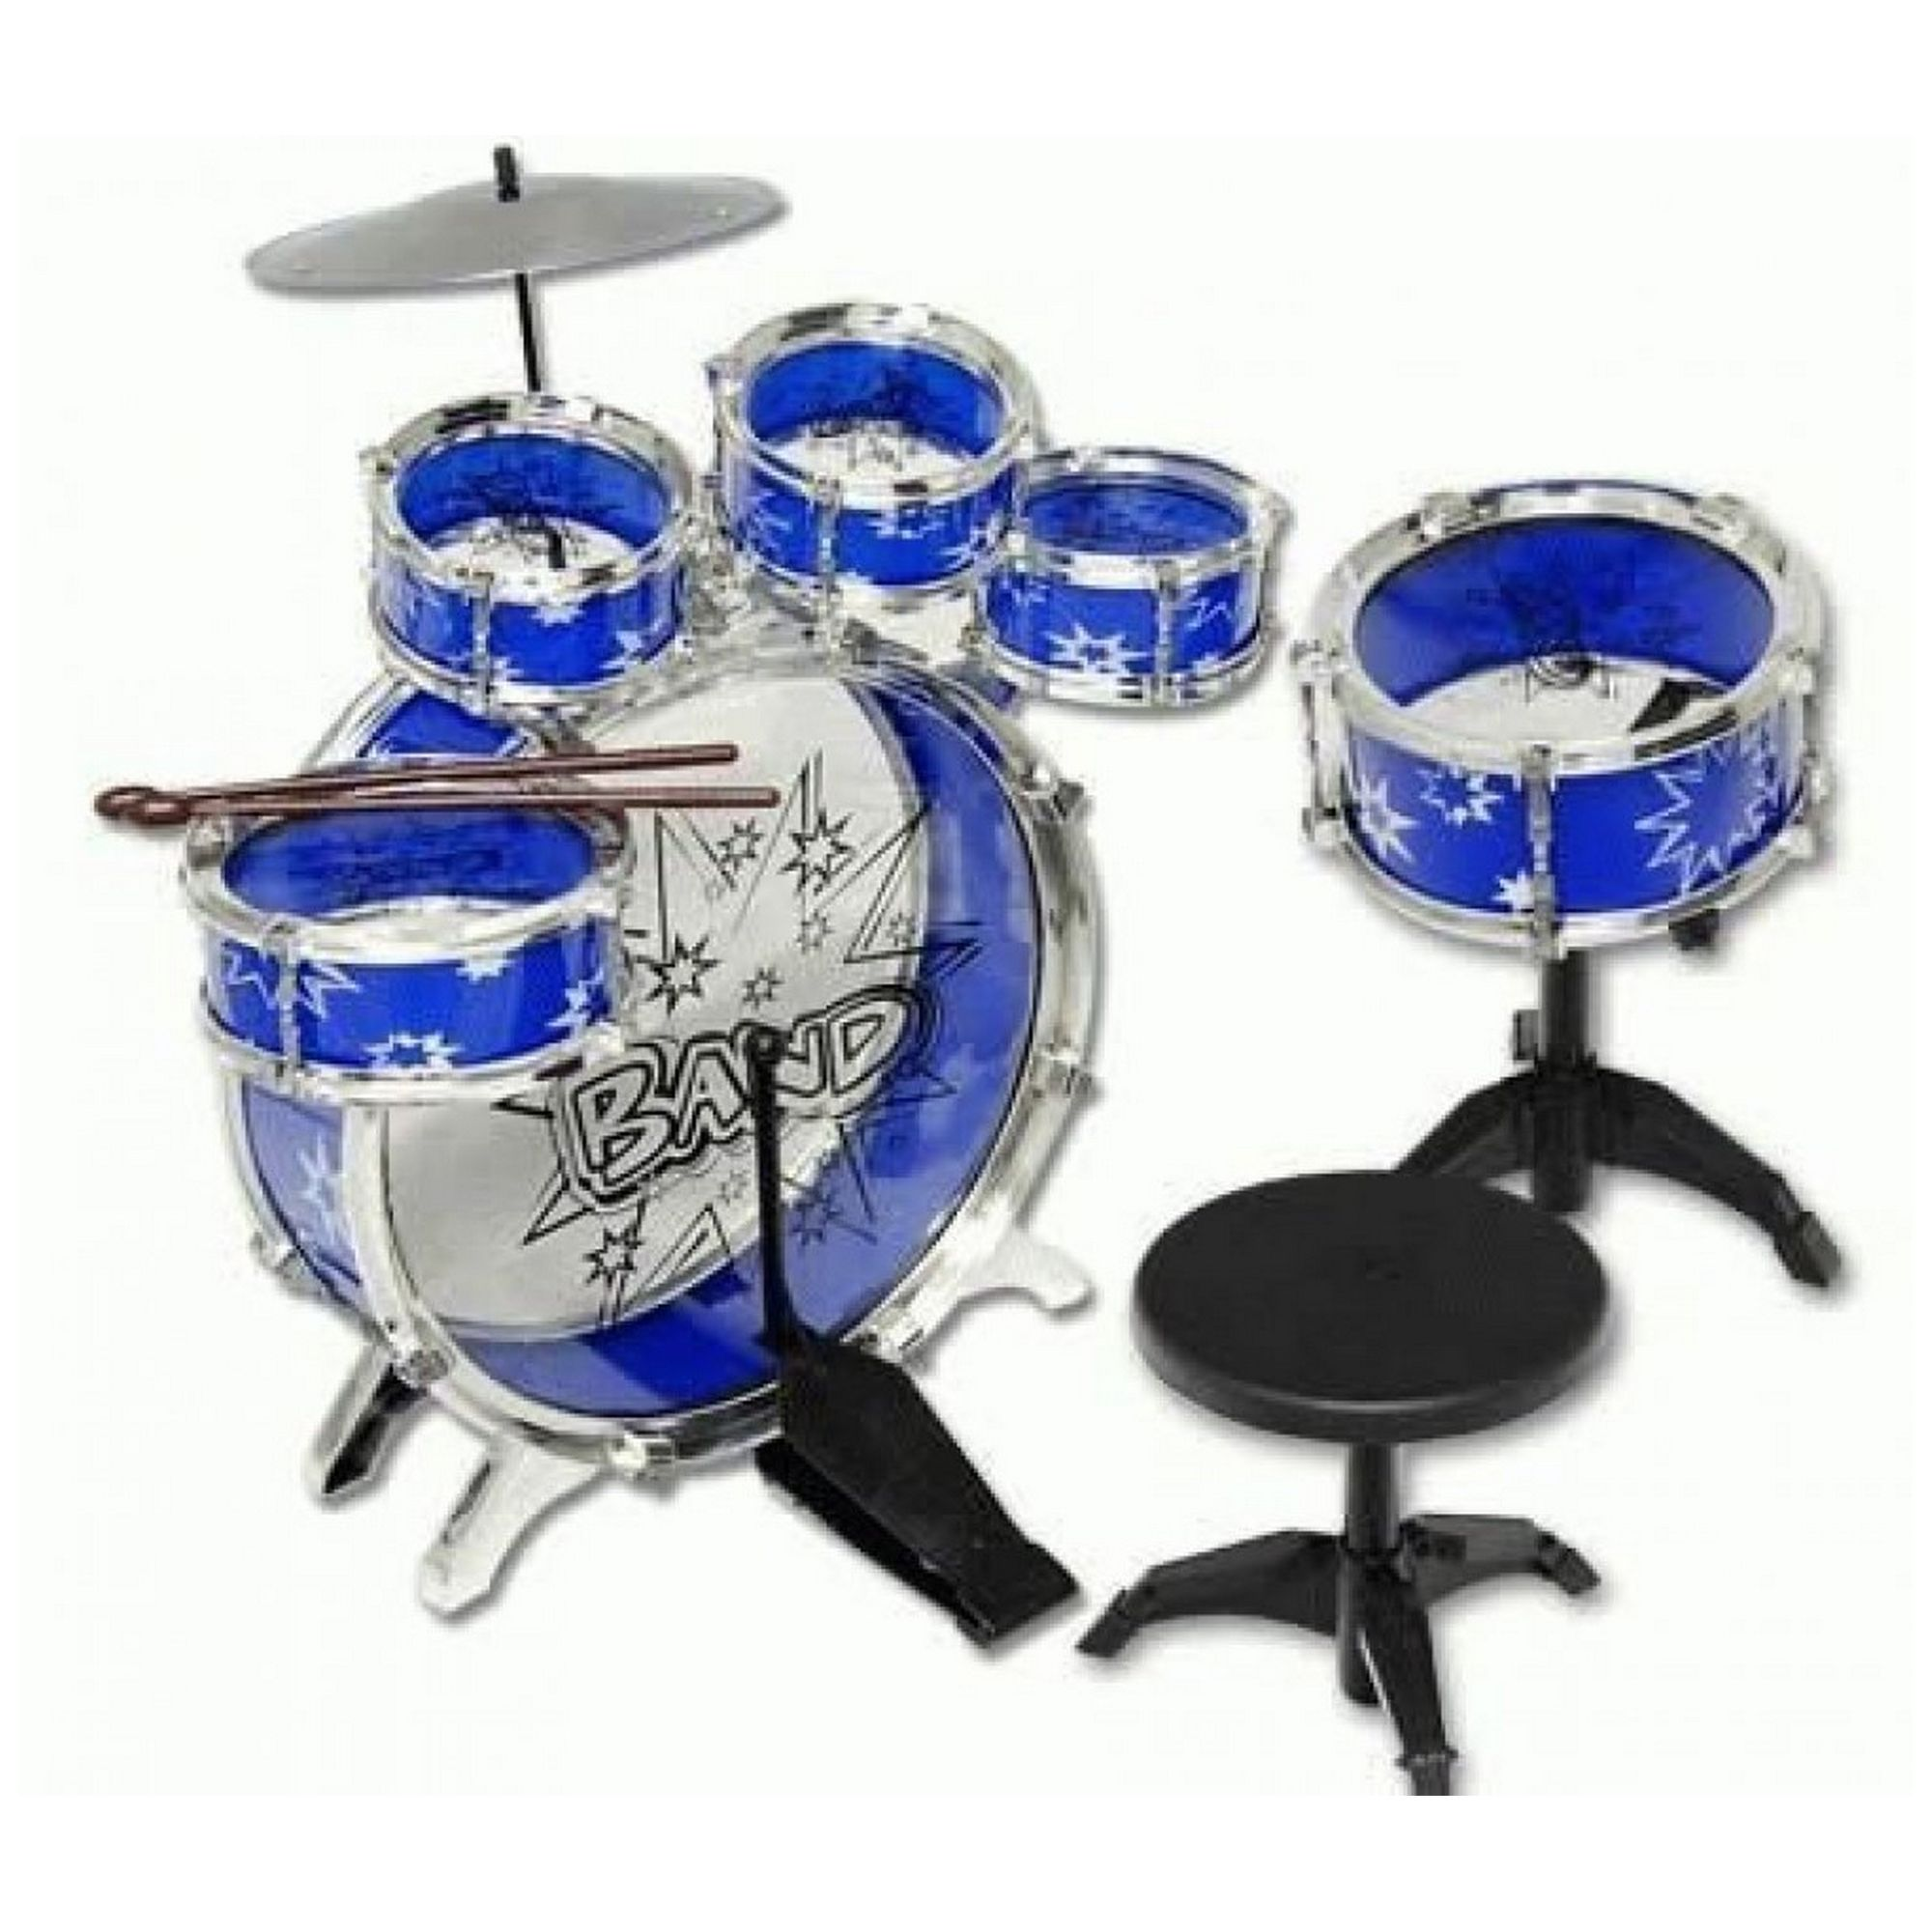 Toy Drum Sets